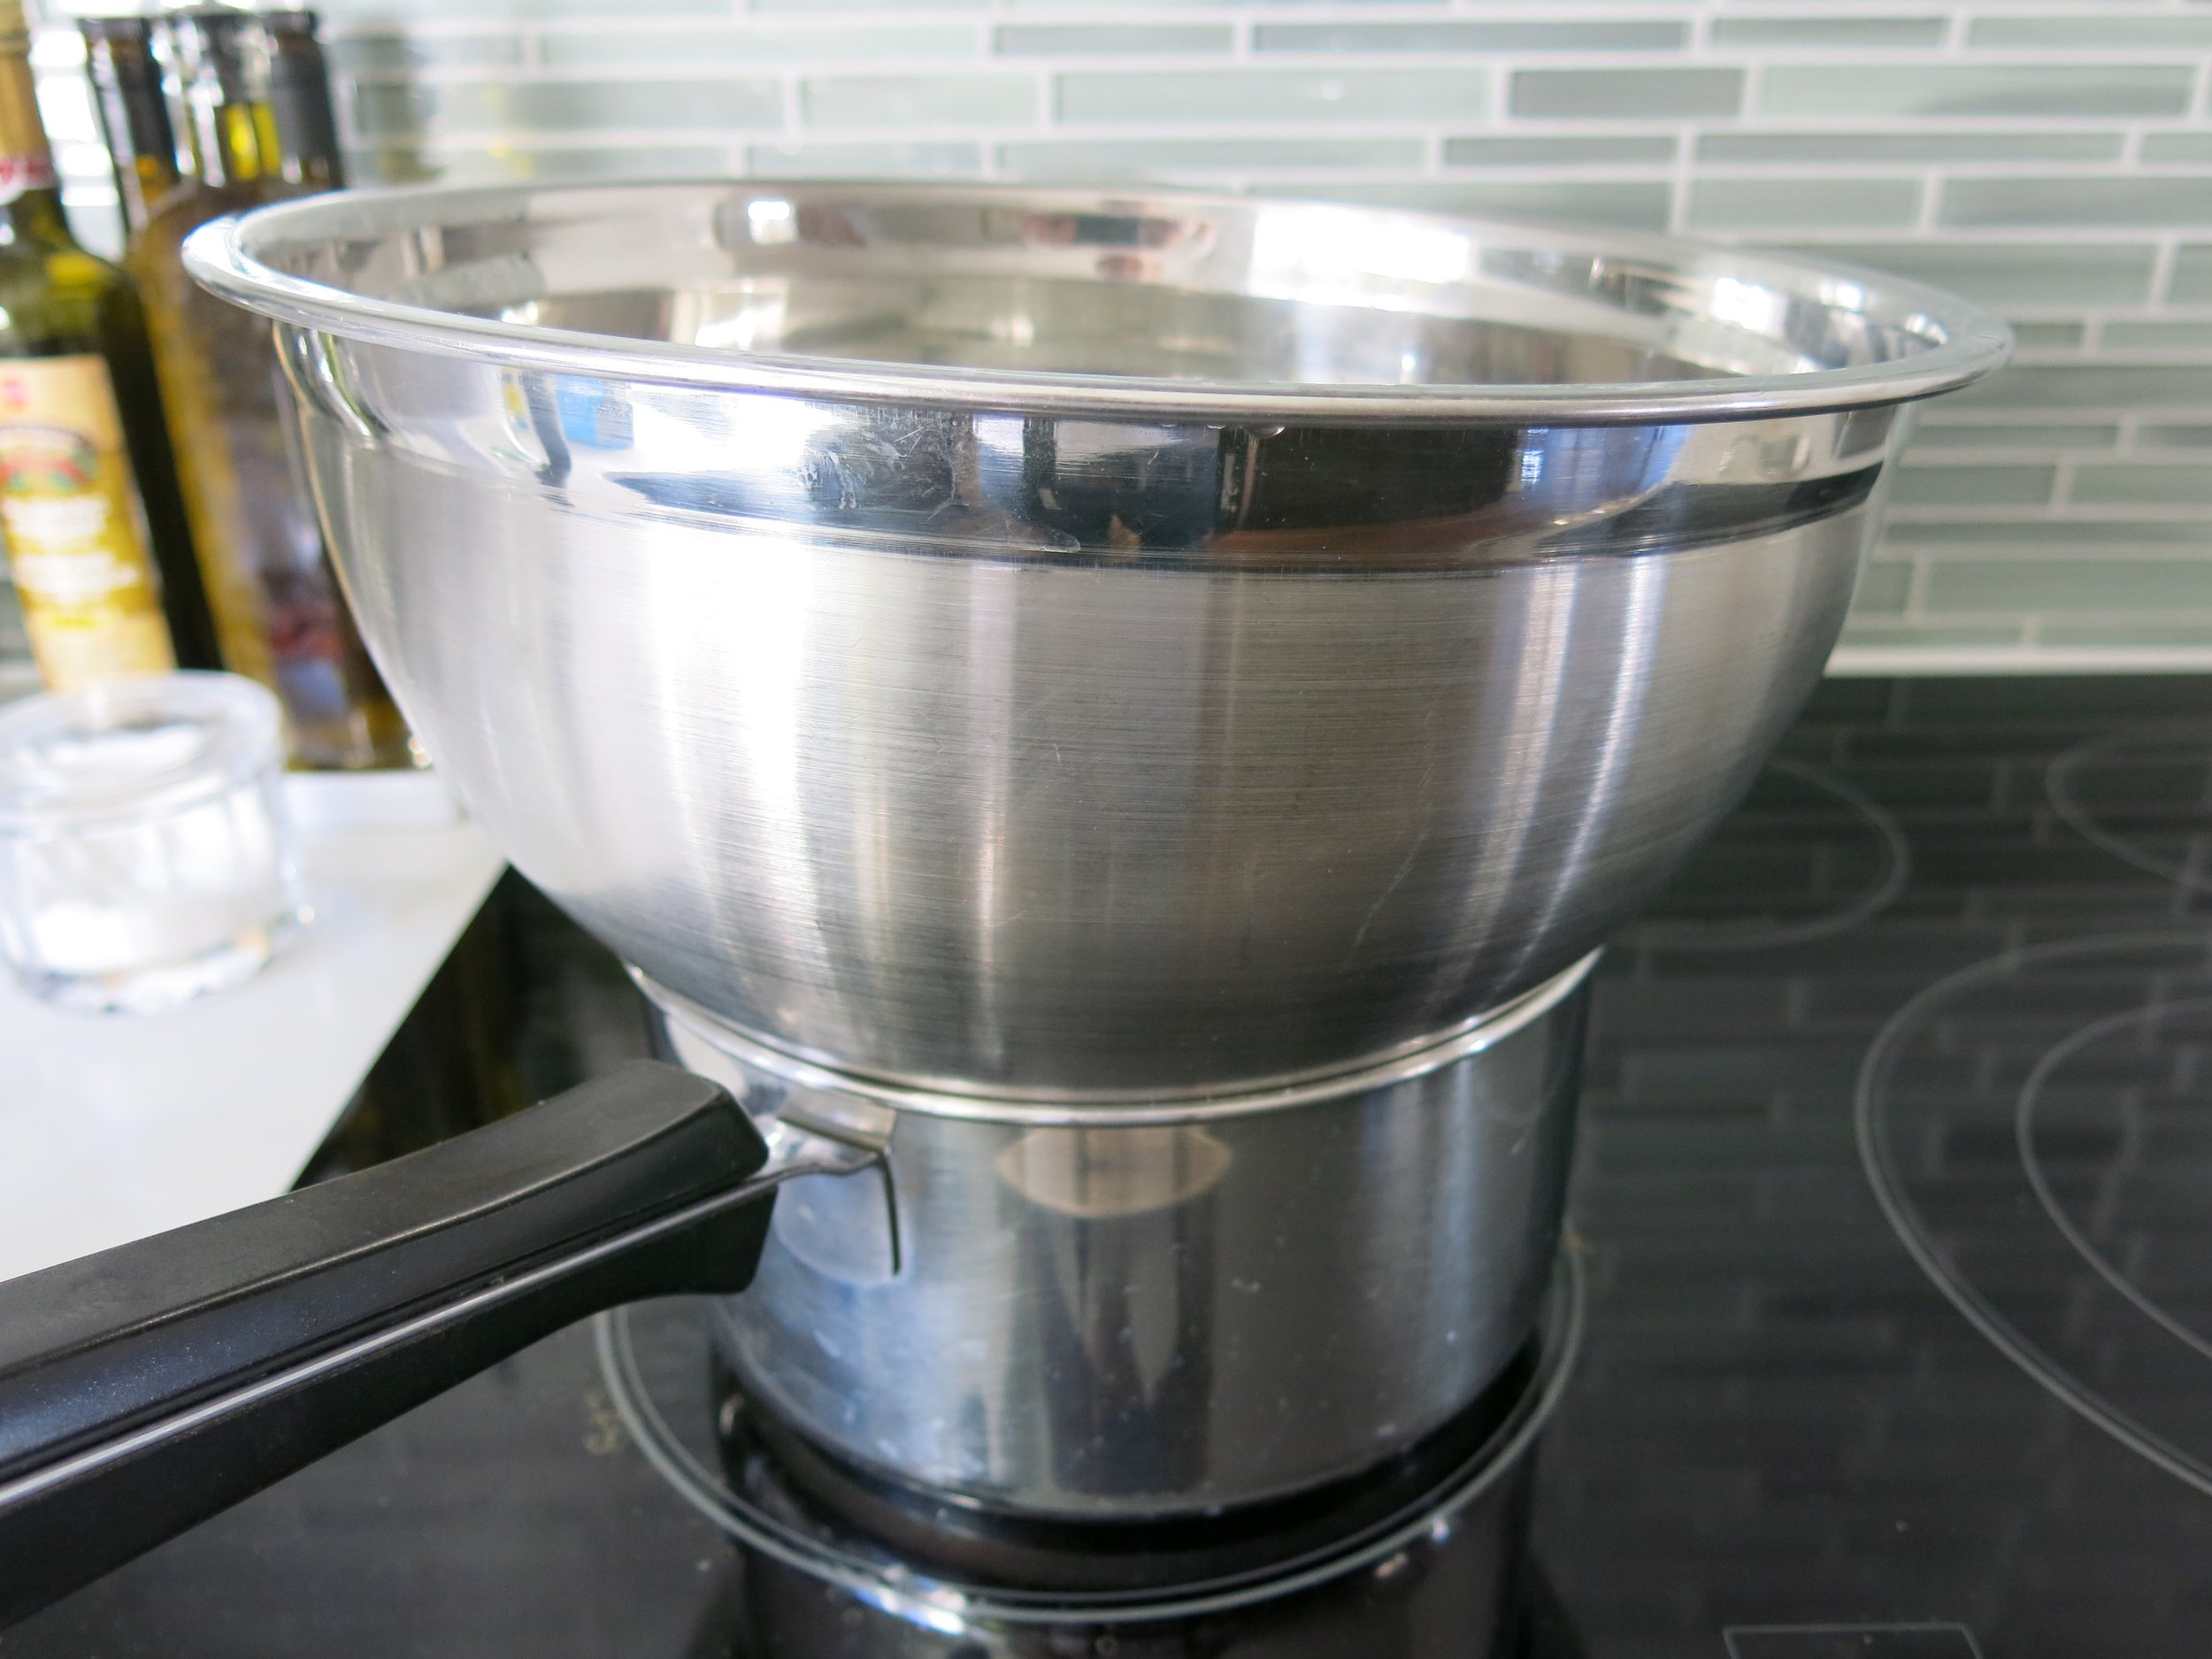 Who need a double boiler when you have a brain that works like this?